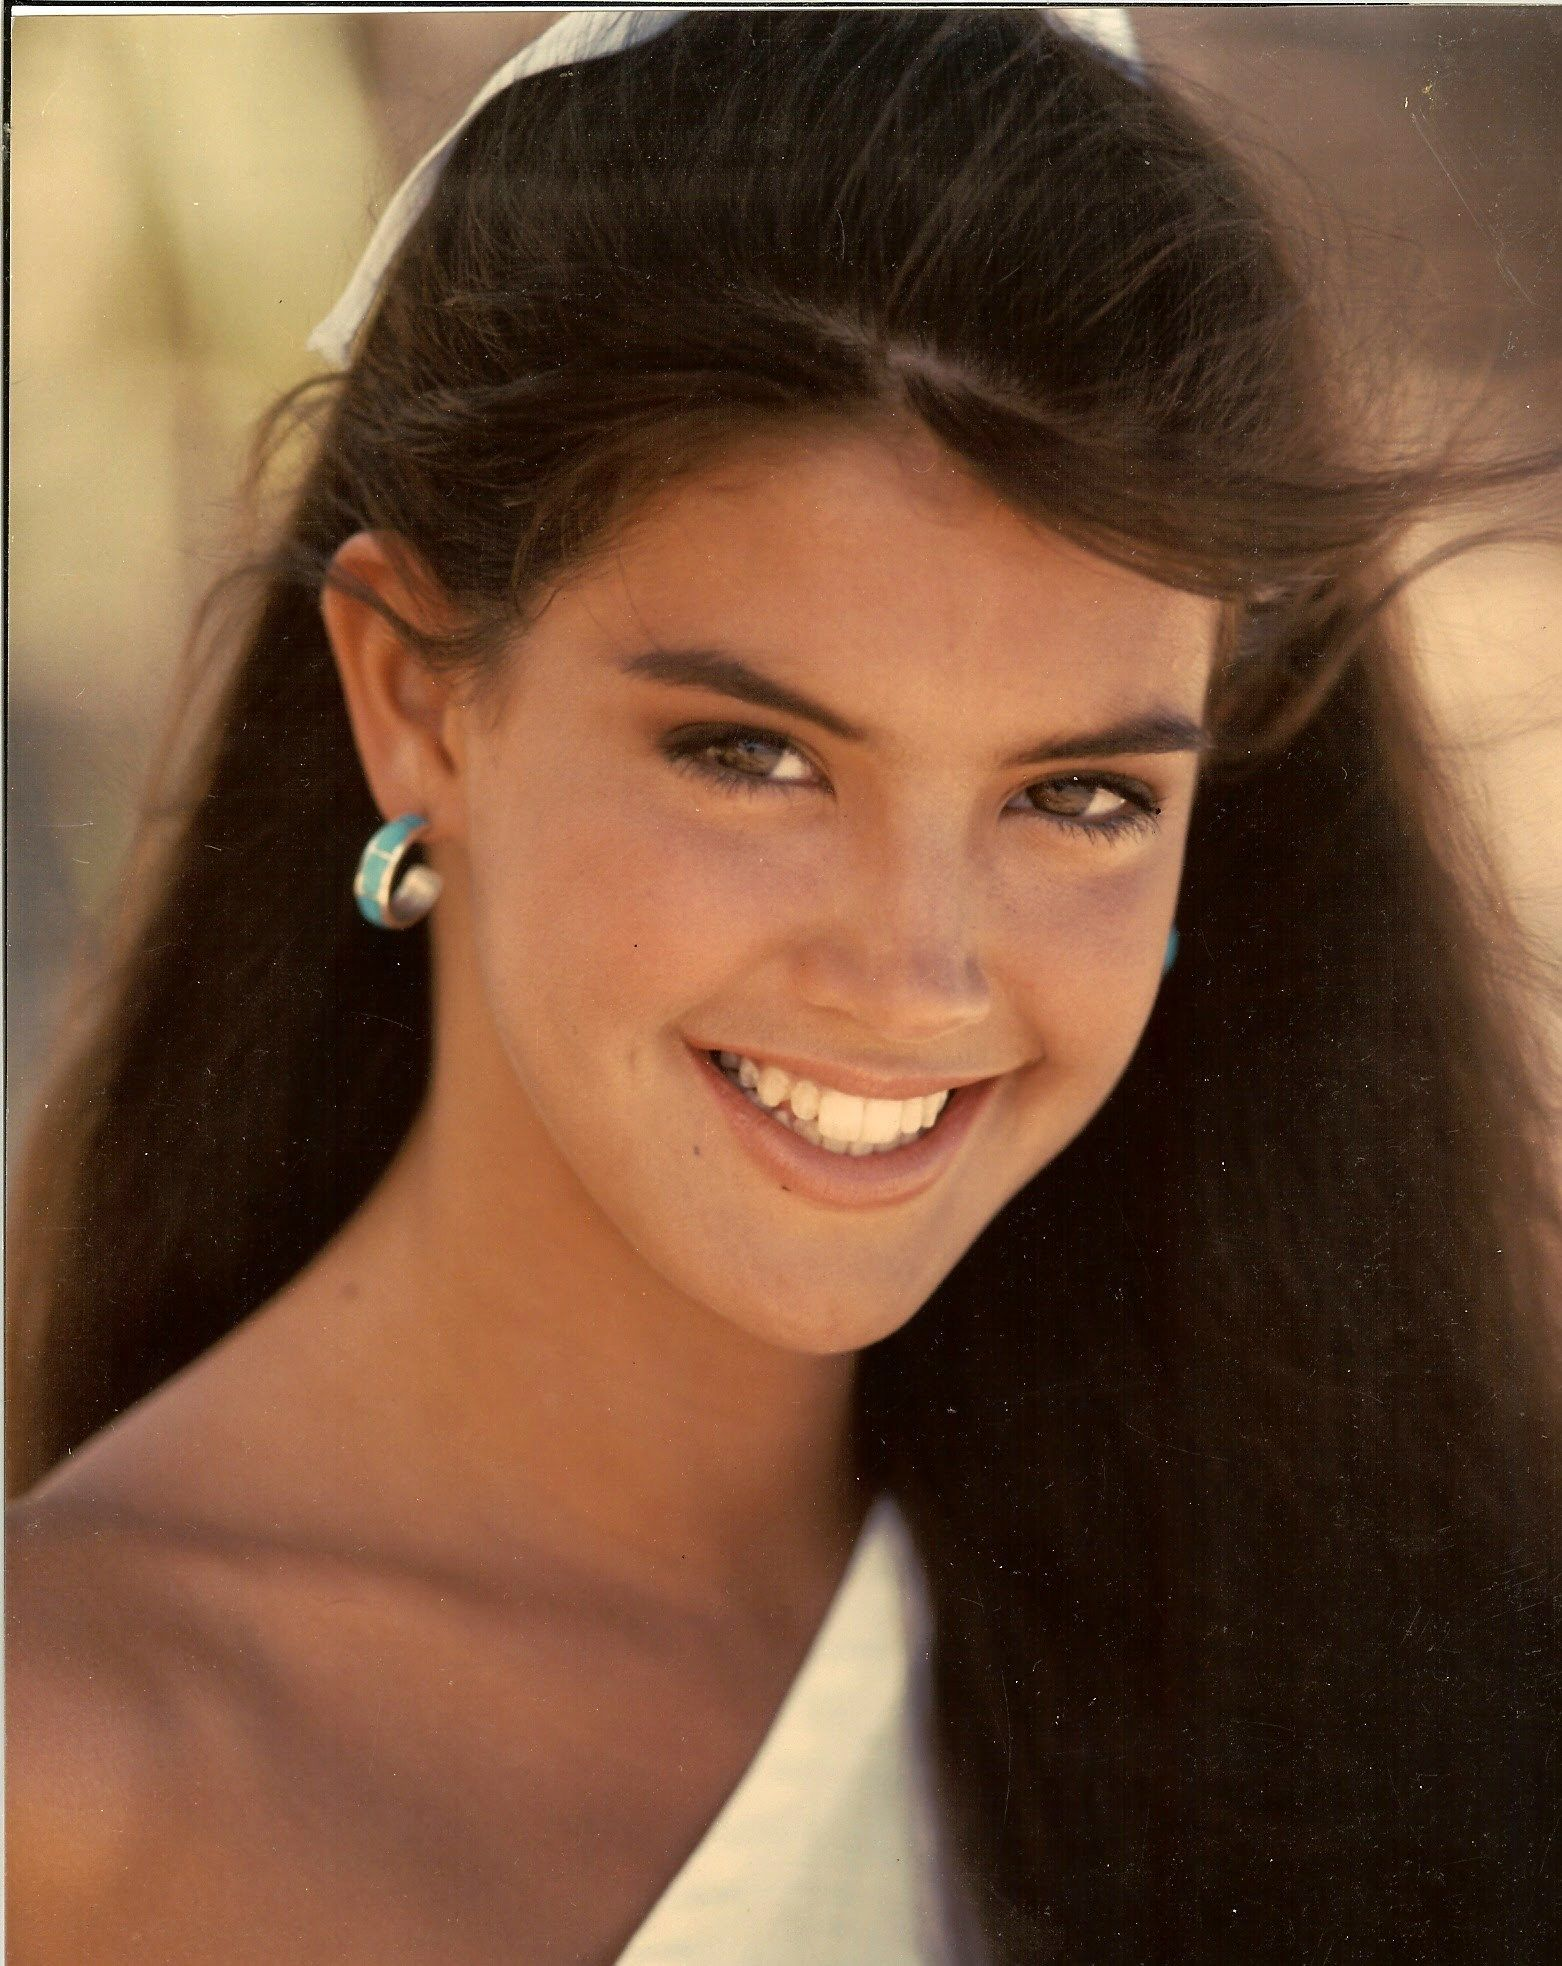 Phoebe Cates Nude Photos 98